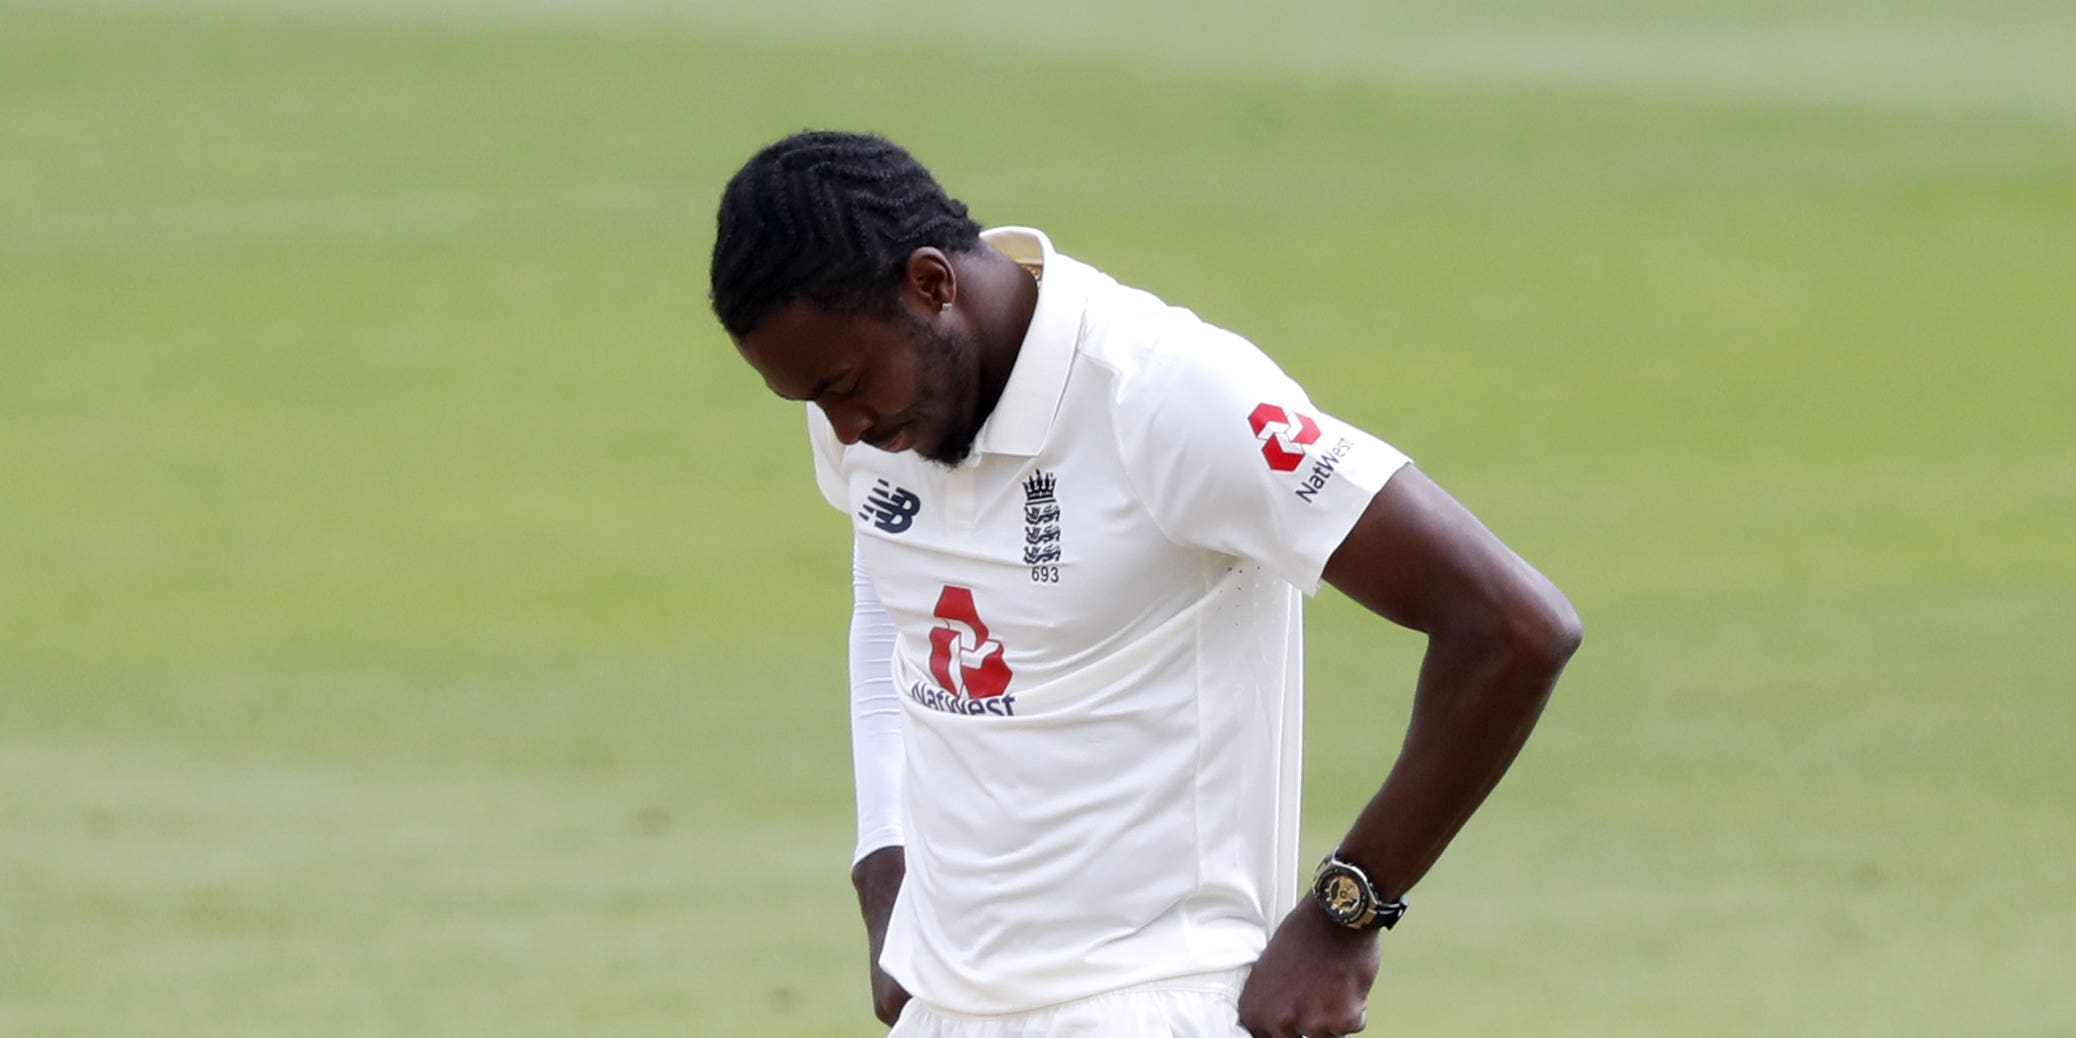 England paceman Jofra Archer to meet with specialists over ongoing elbow issue